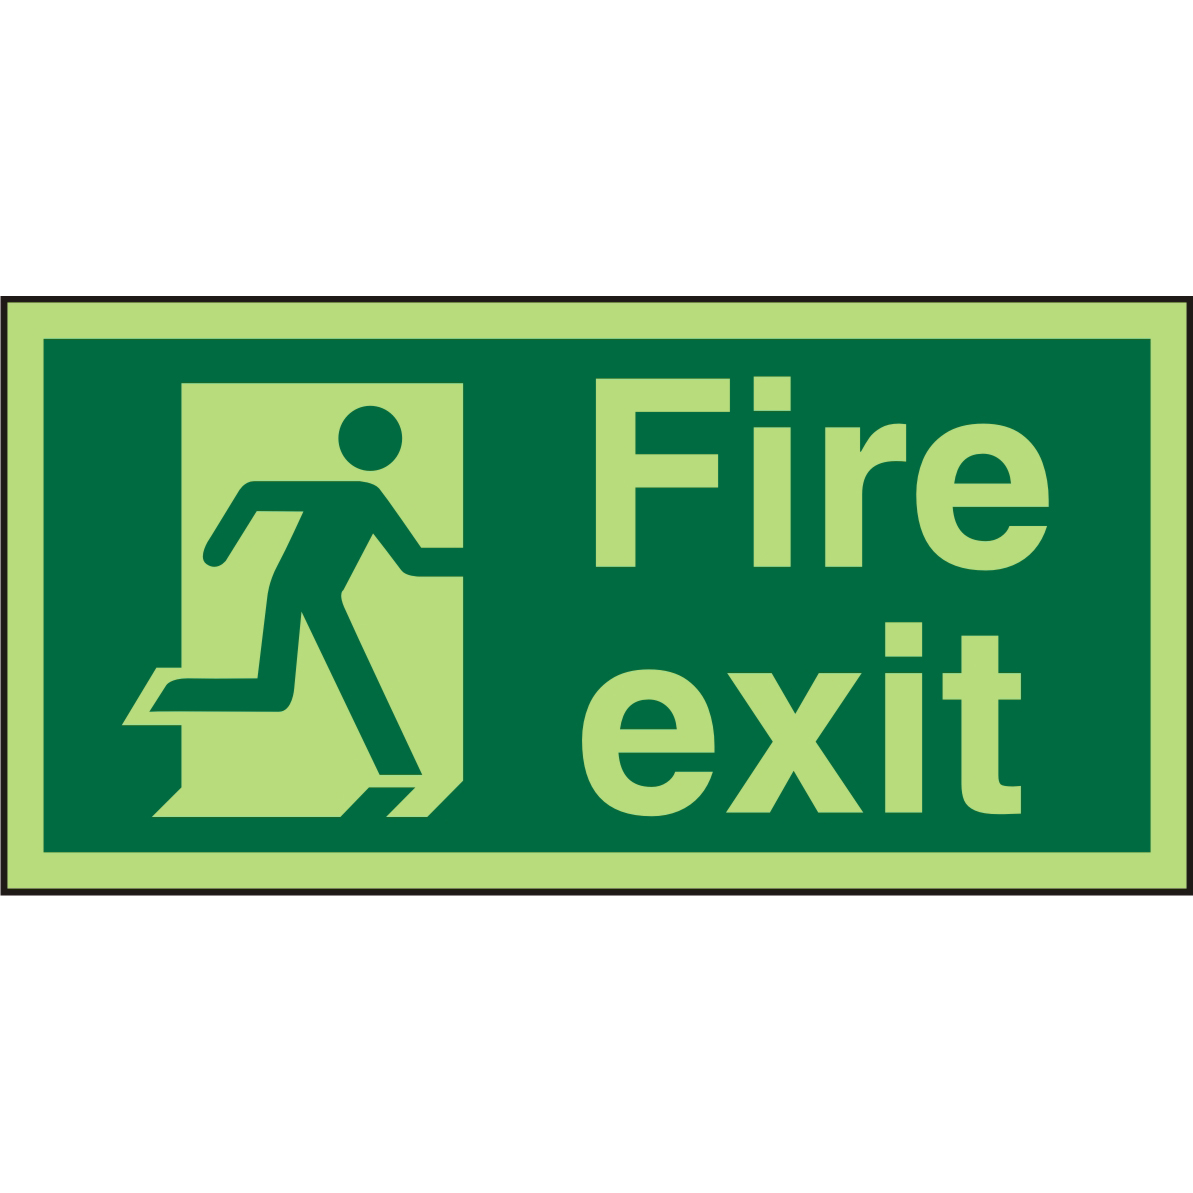 Photolum Sign 300x150 Plastic Fire Exit Man Running Right Ref PSP318SRP300x150 Up to 10 Day Leadtime